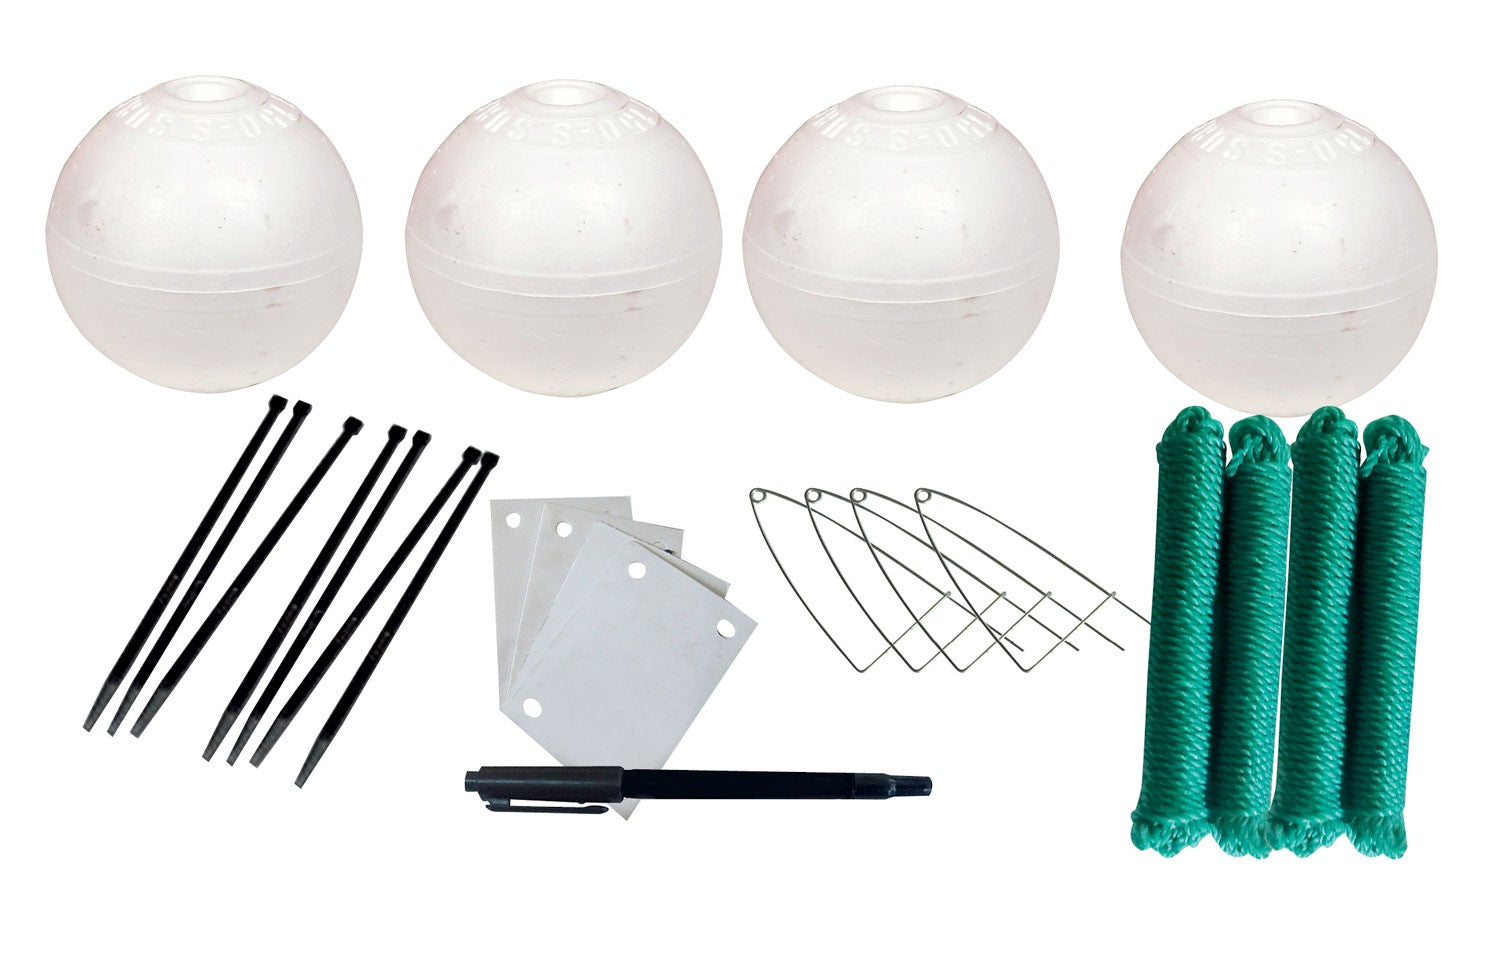 Net Factory 150mm Crabbing Accessory Kit - Large